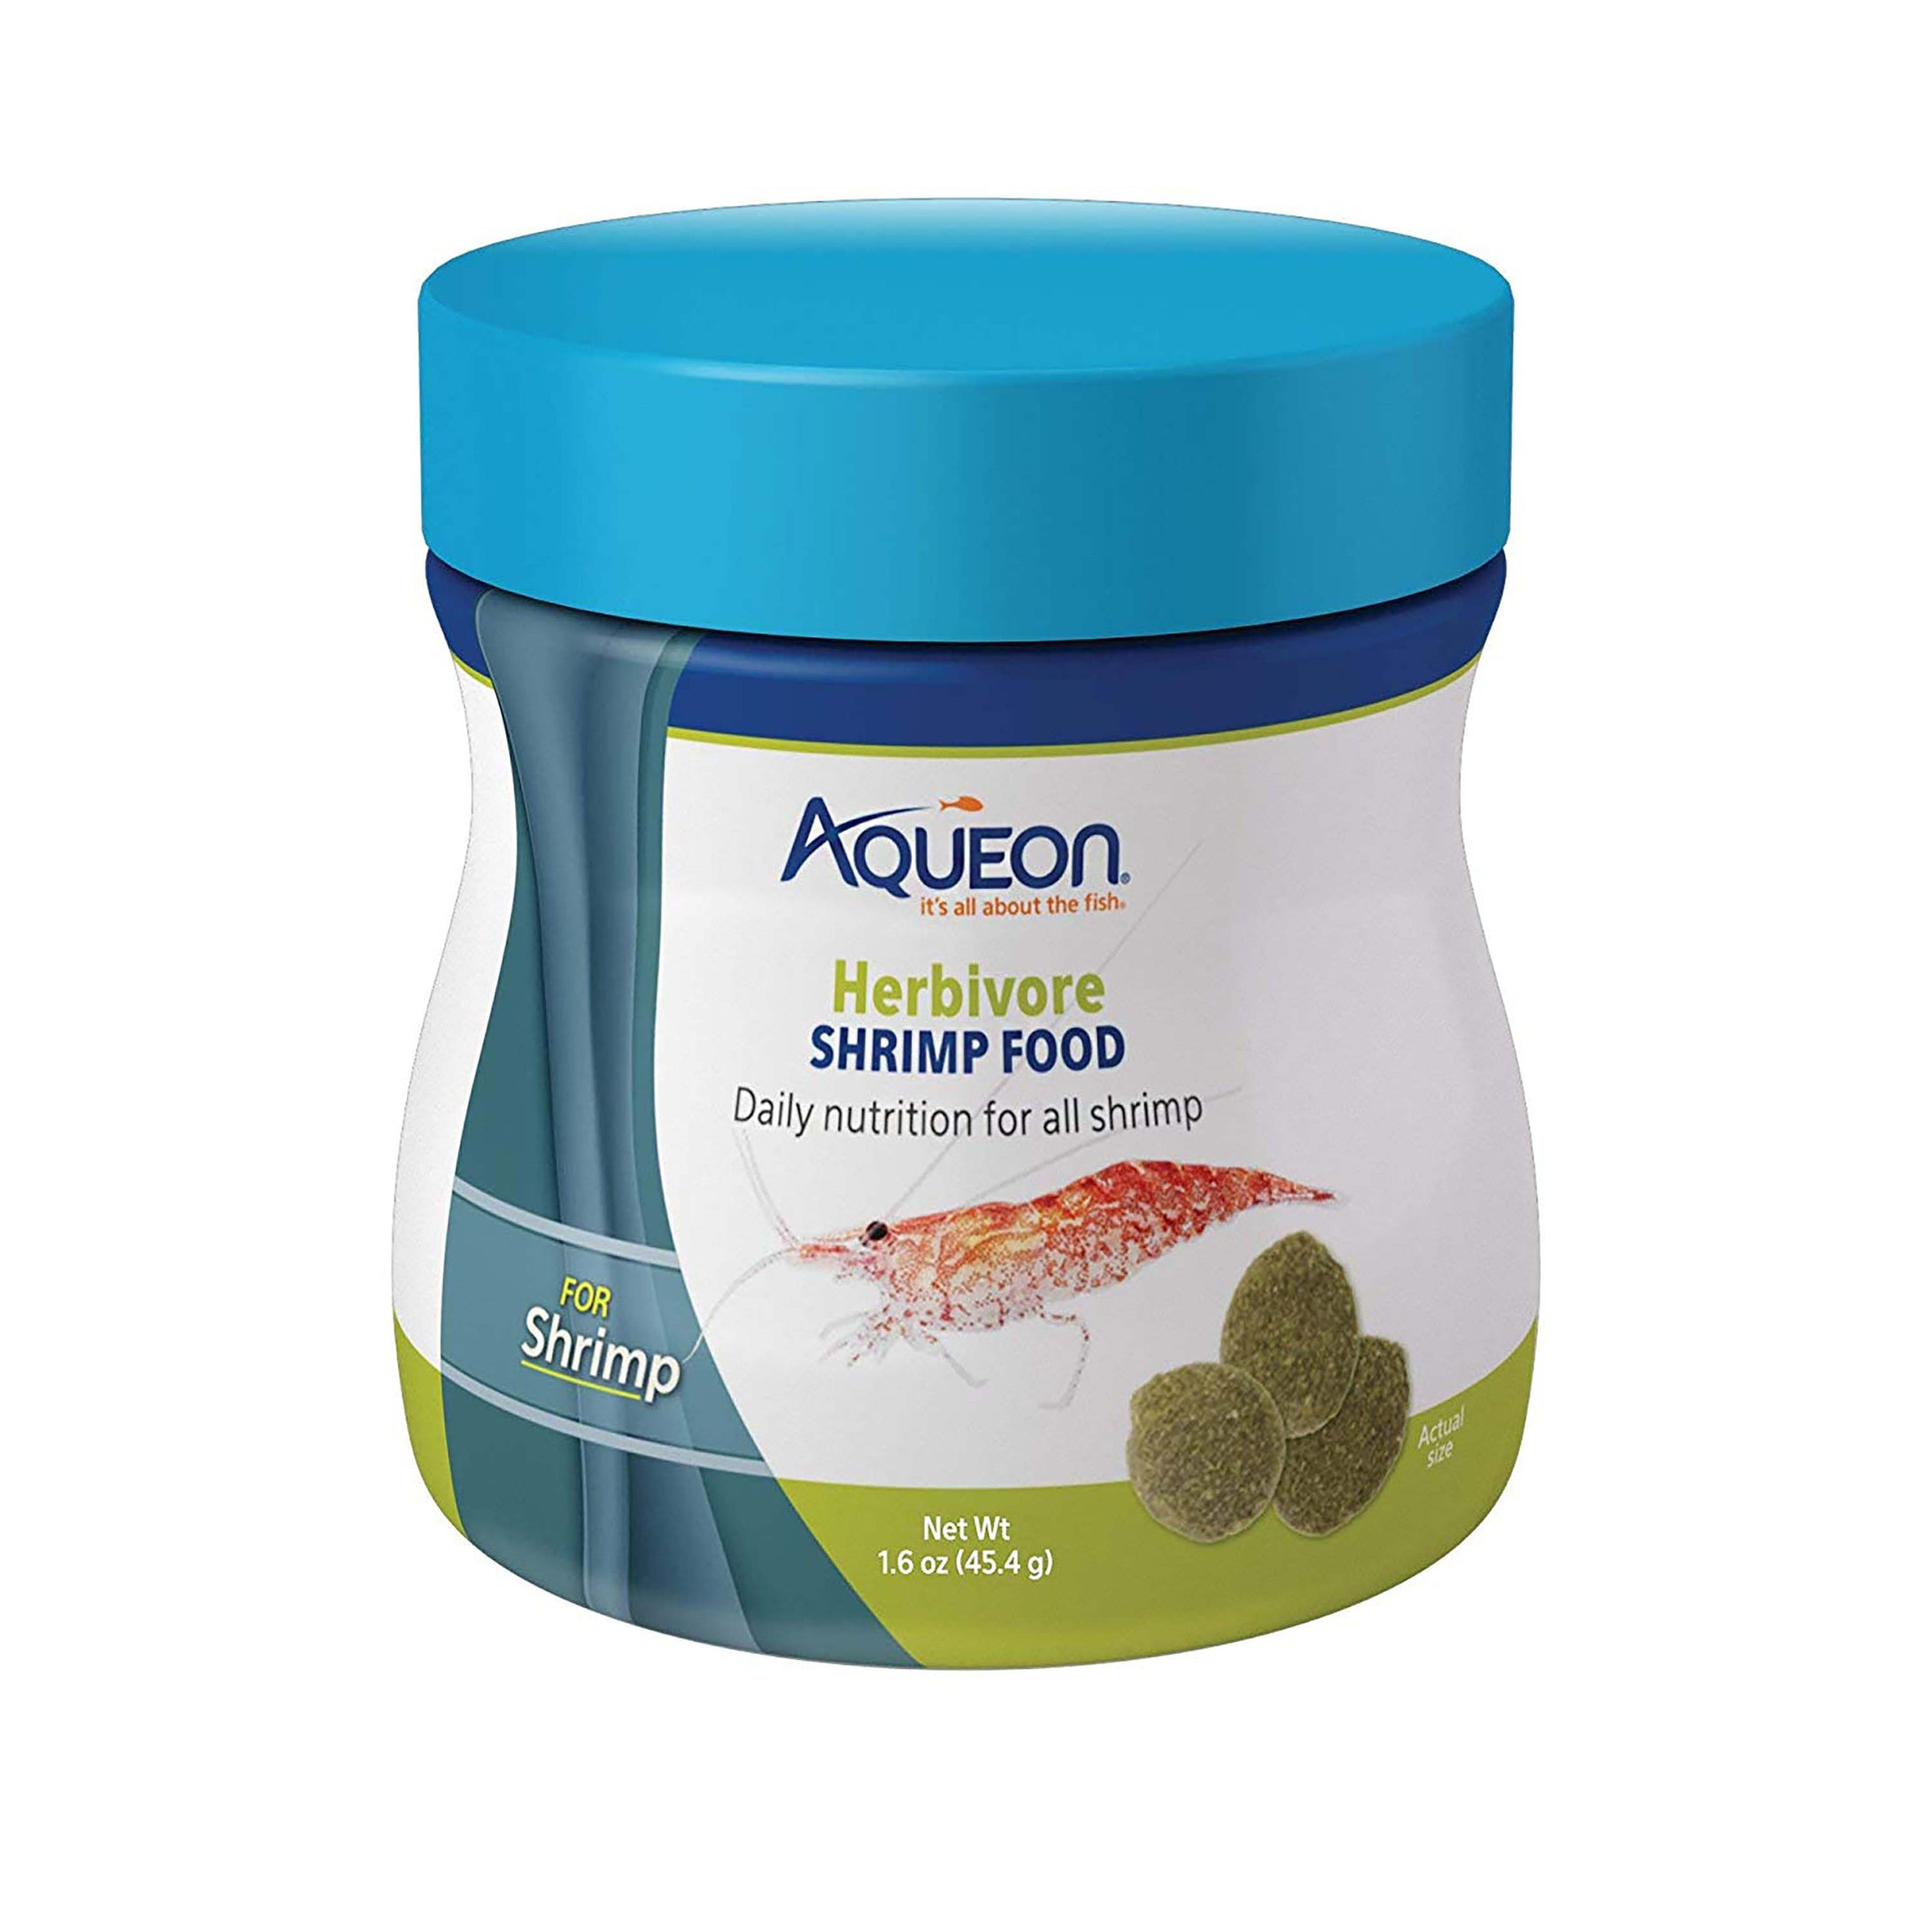 Aqueon Herbivore Shrimp Disc Food 1.6 Ounces